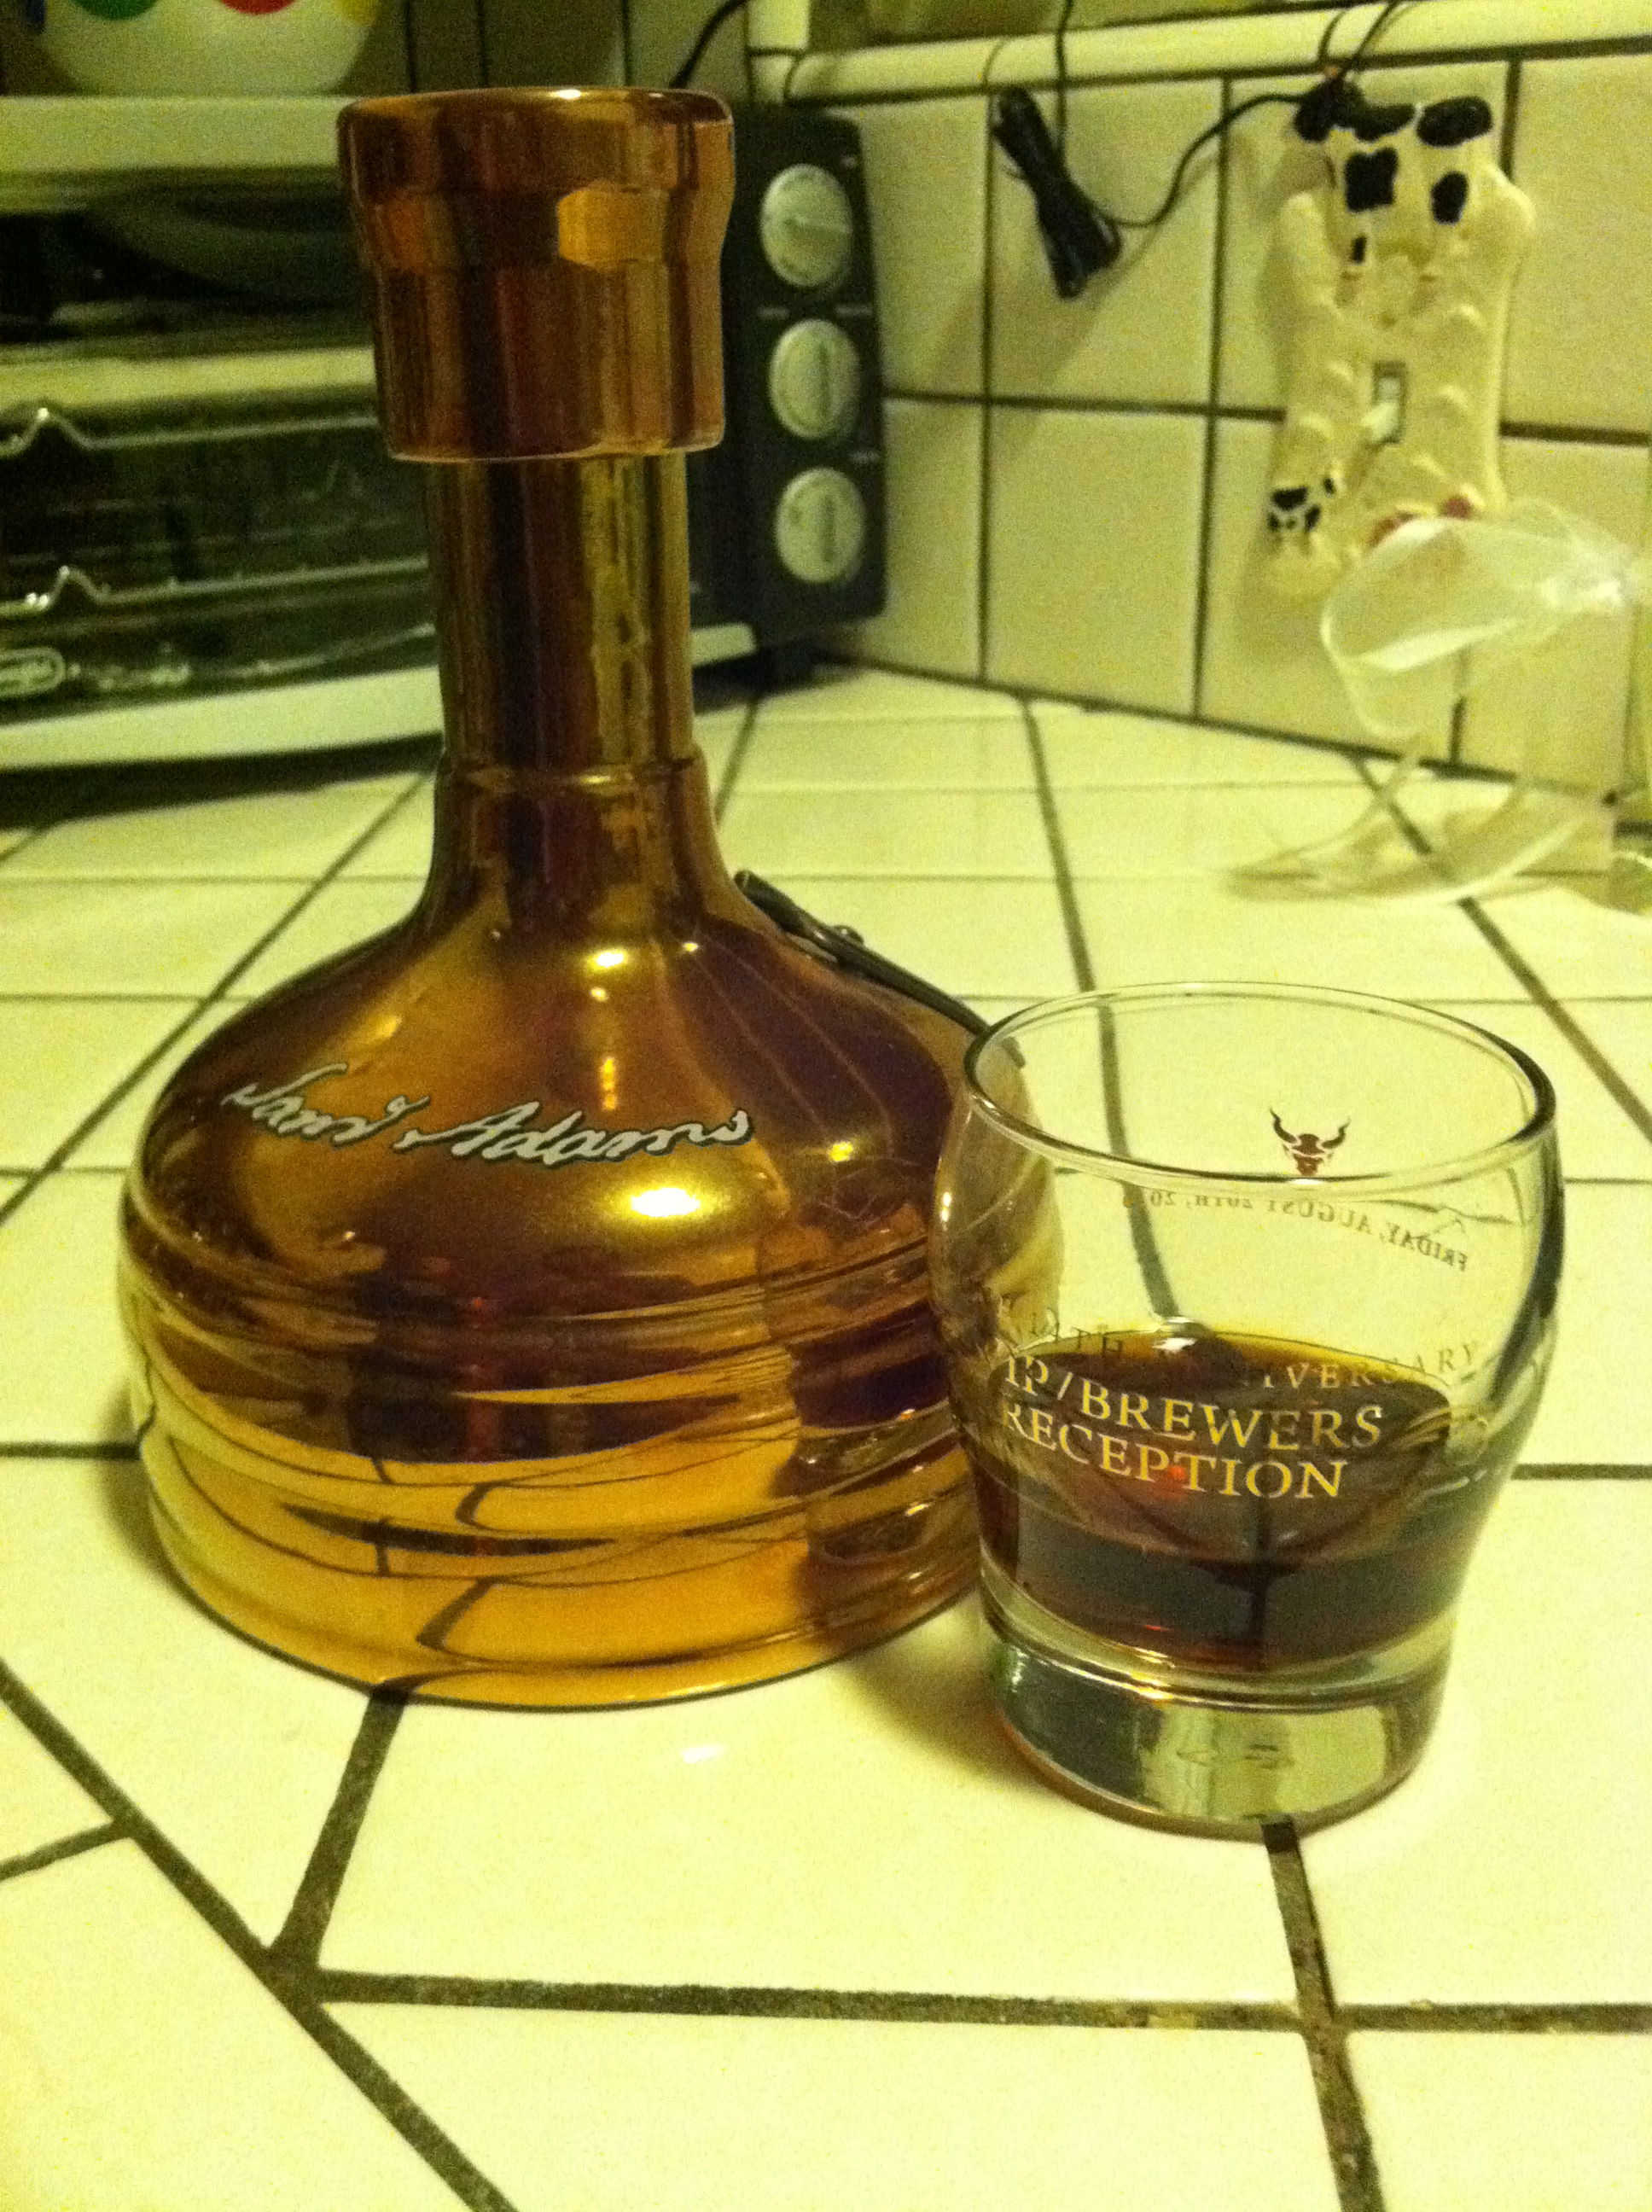 Sam Adams Utopias, $220 bottle of beer, 27% alcohol by volume, where are my  shoes?